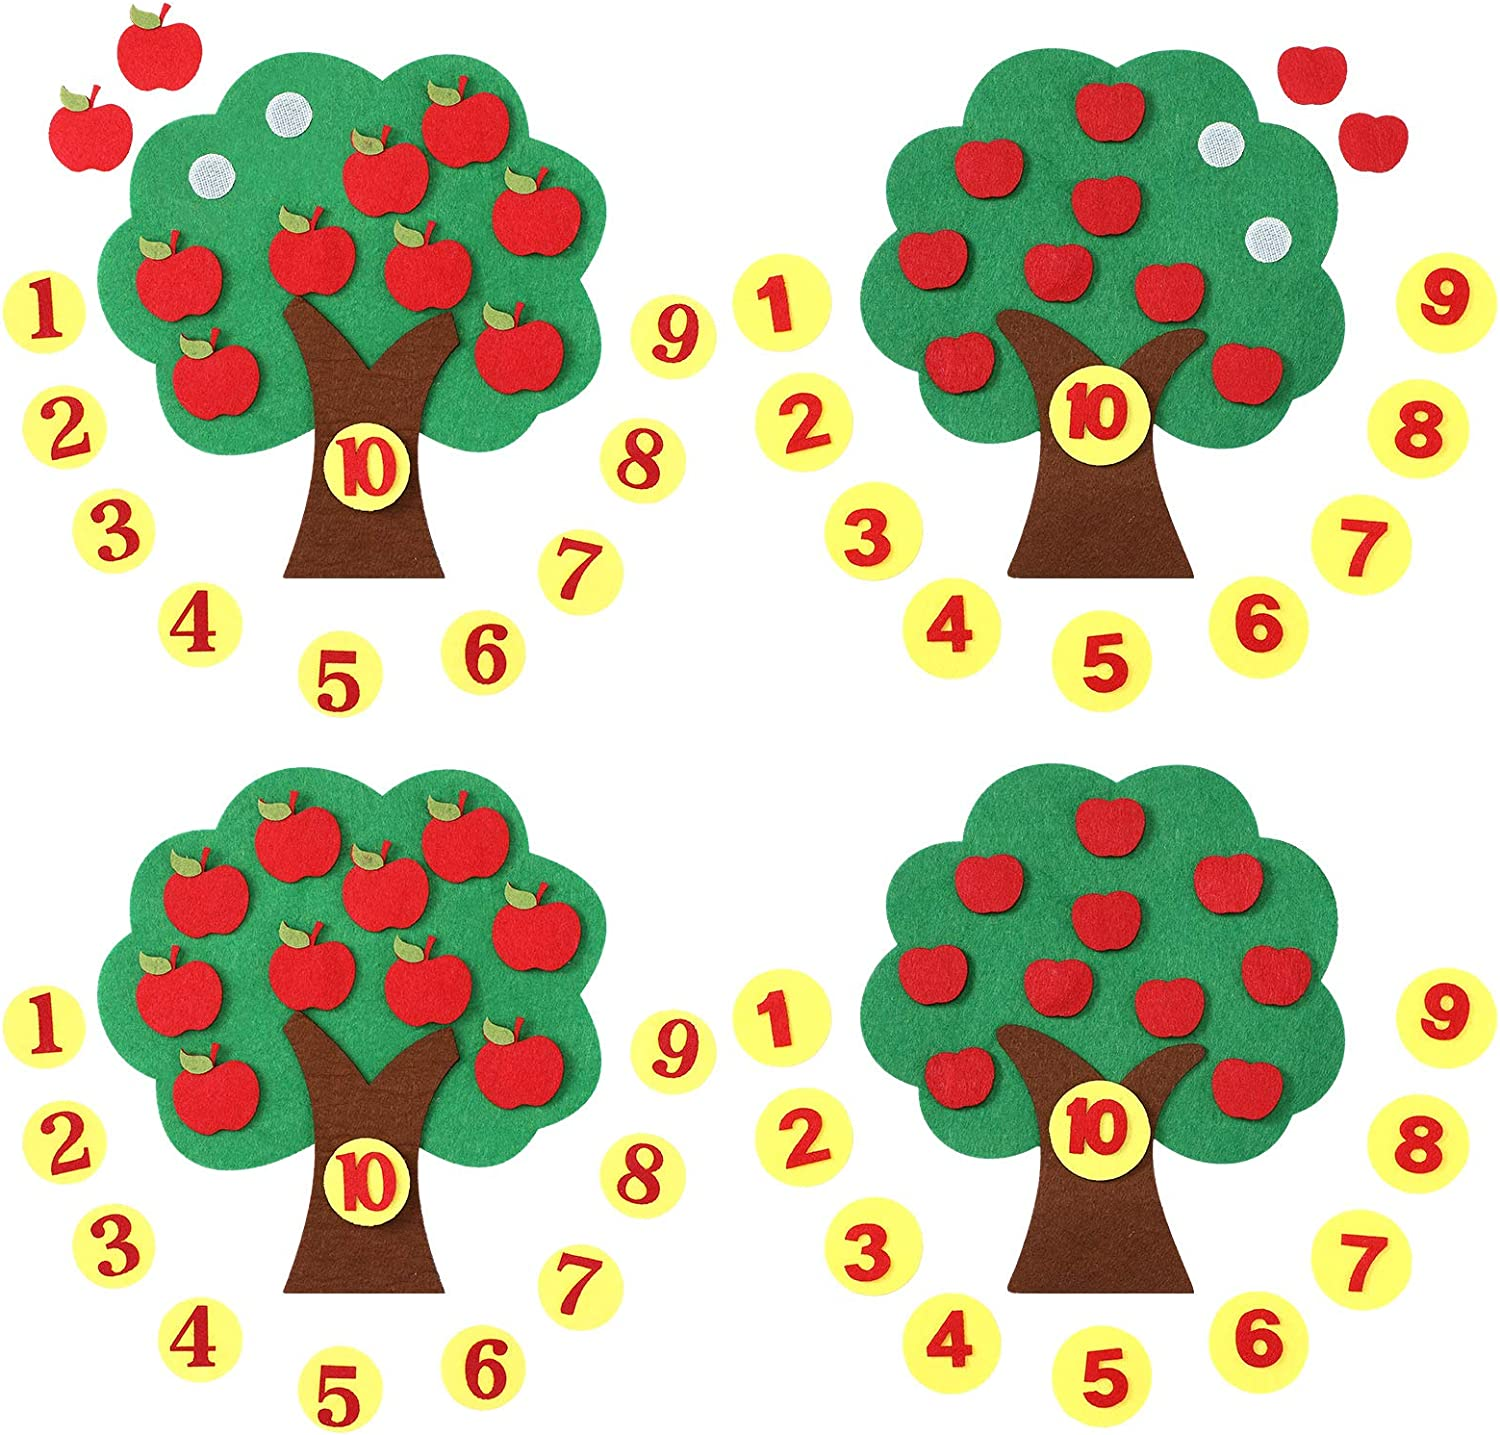 Tatuo 4 Pieces Fruit Apple Tree Felt Toys Math Educational Counting Number Matching Apple Tree with 10 Pieces Detachable Number Felts for Preschool Kindergarten Classroom Craft Supplies